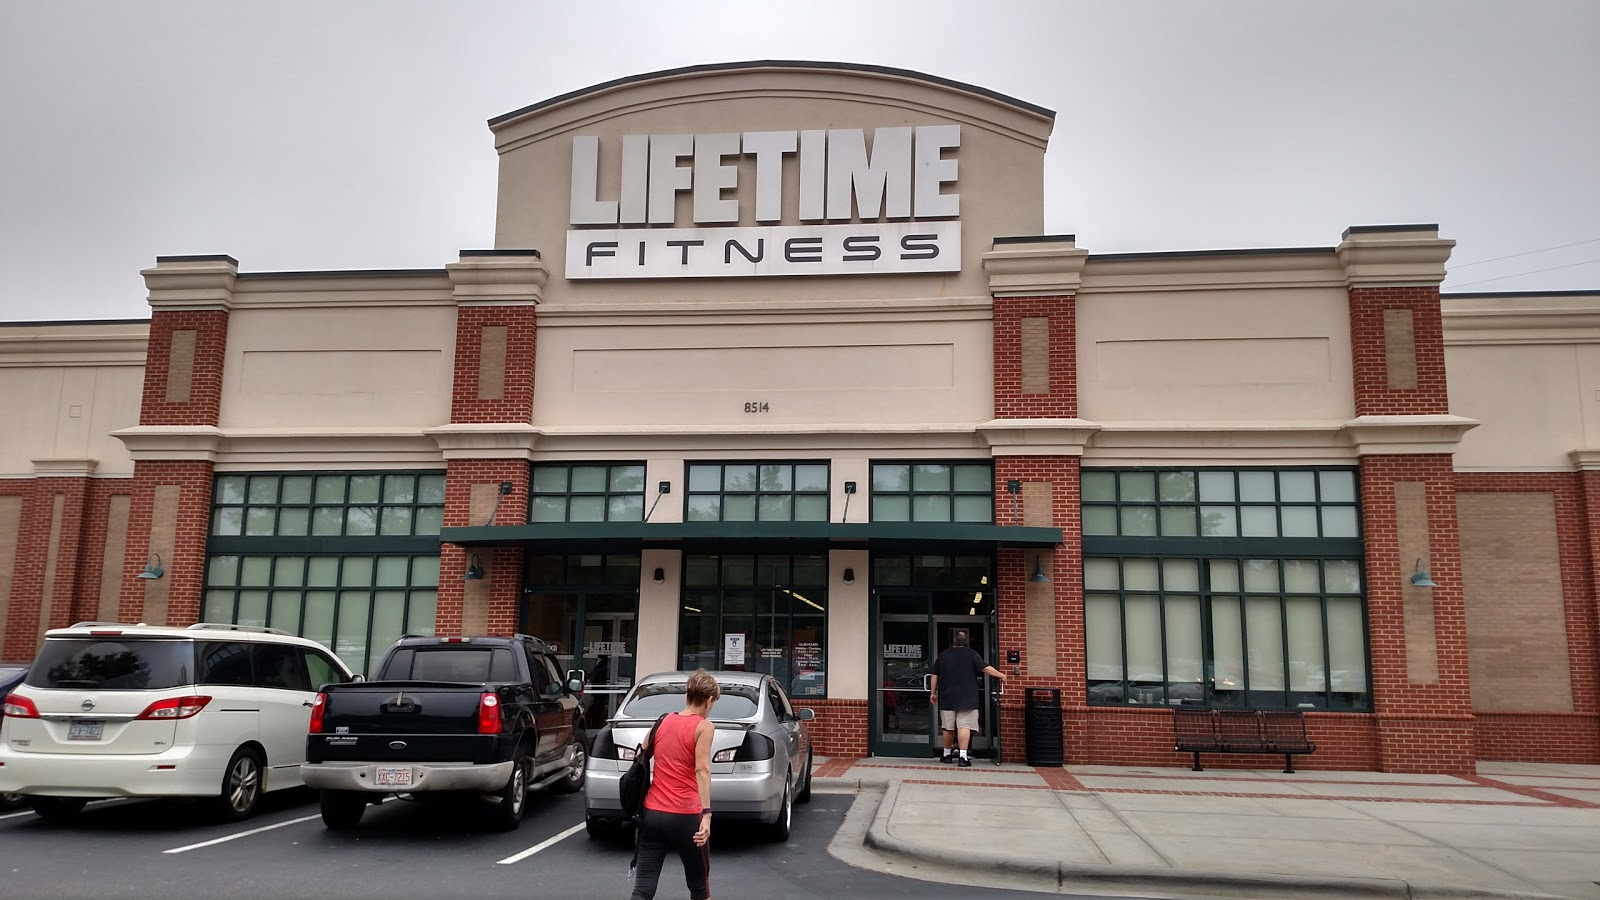 Life Time Fitness - photo